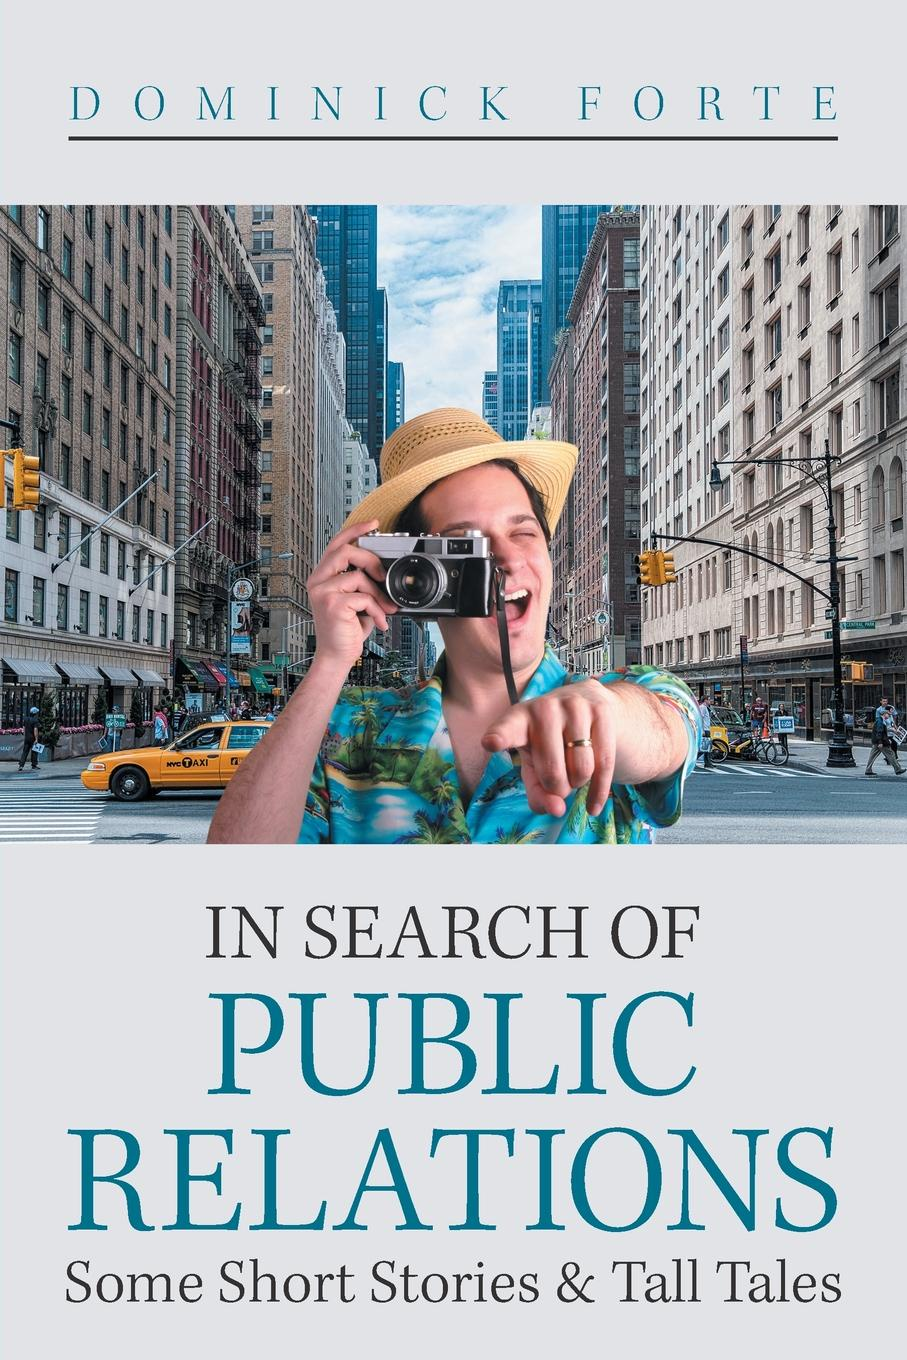 цена Dominick Forte In Search of Public Relations. Some Short Stories . Tall Tales онлайн в 2017 году